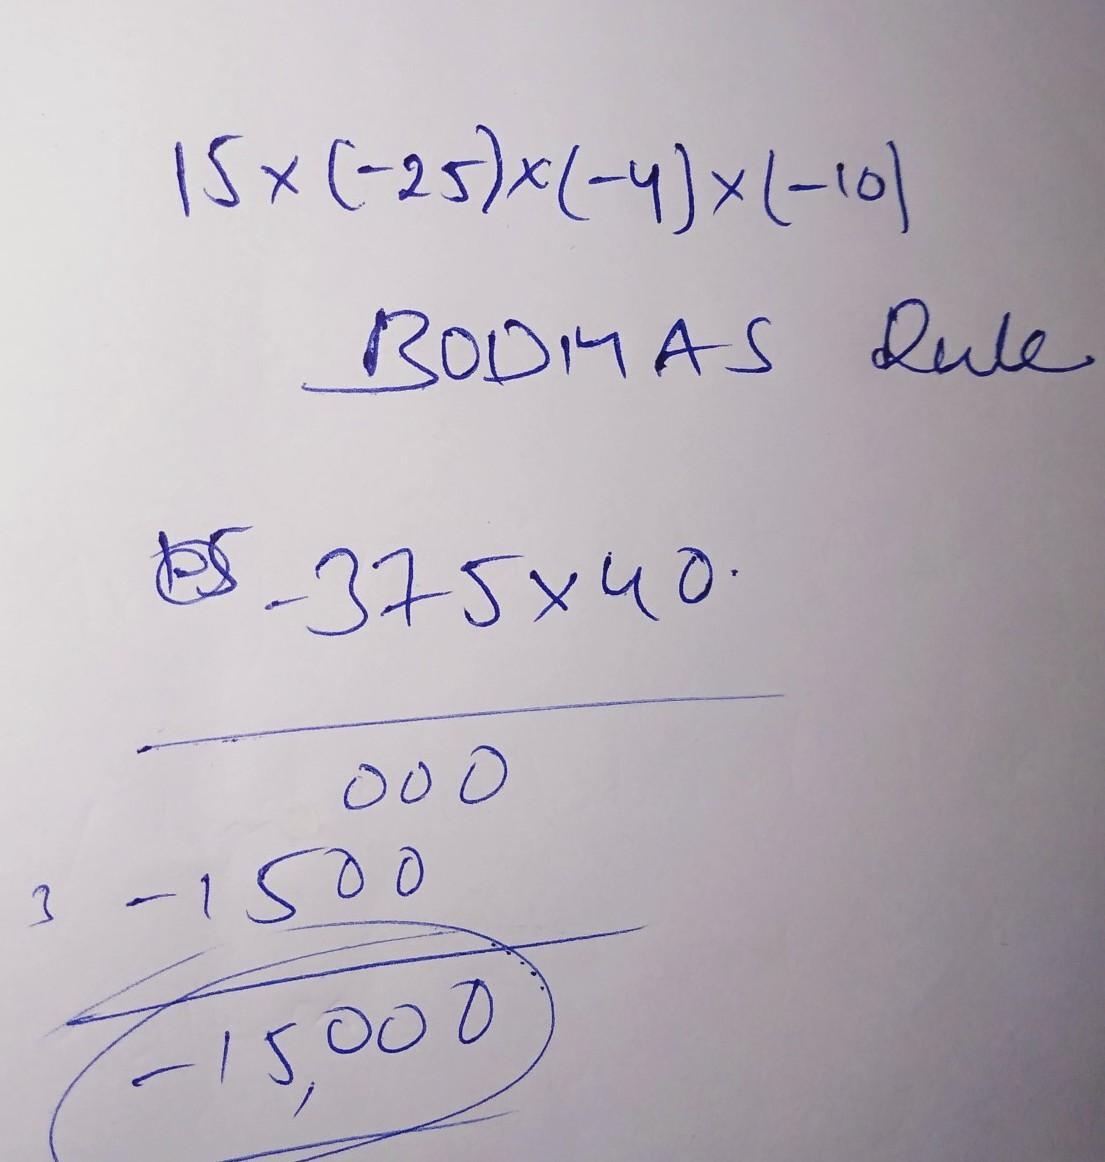 15*(-25)*(-4)*(-10). Find The Product Using Suitable